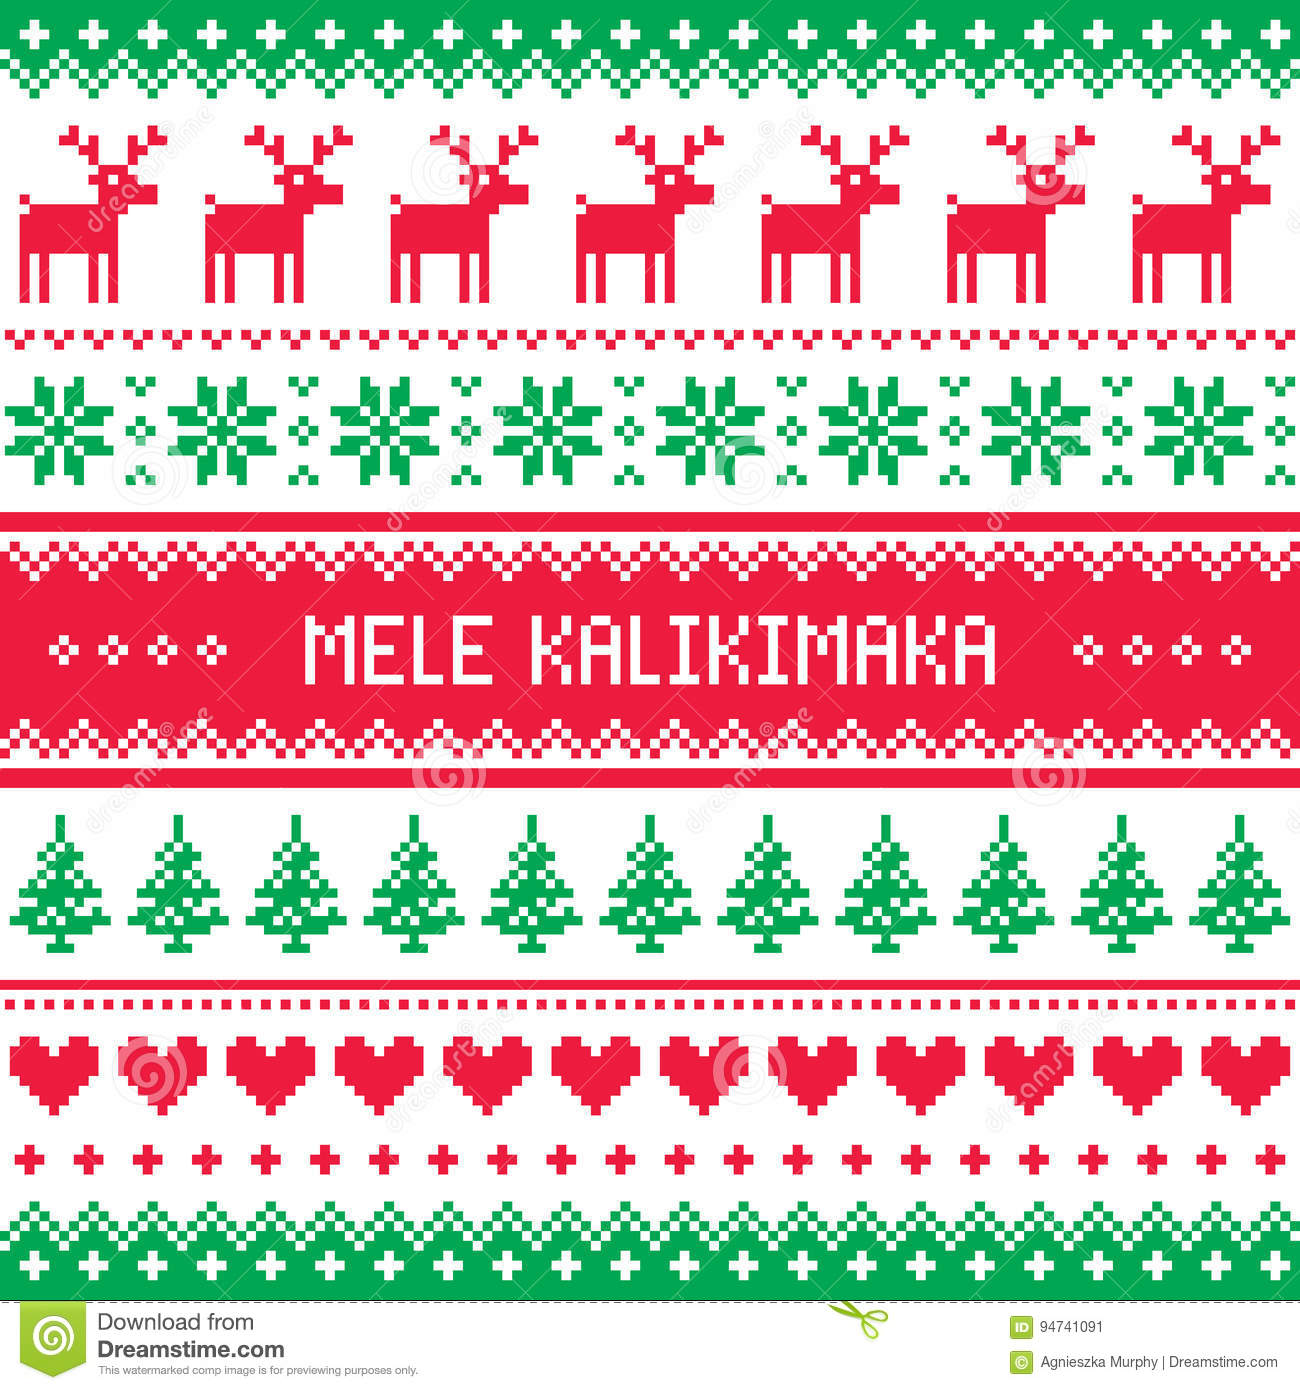 Mele kalikimaka merry christmas in hawaiian greetings card download comp m4hsunfo